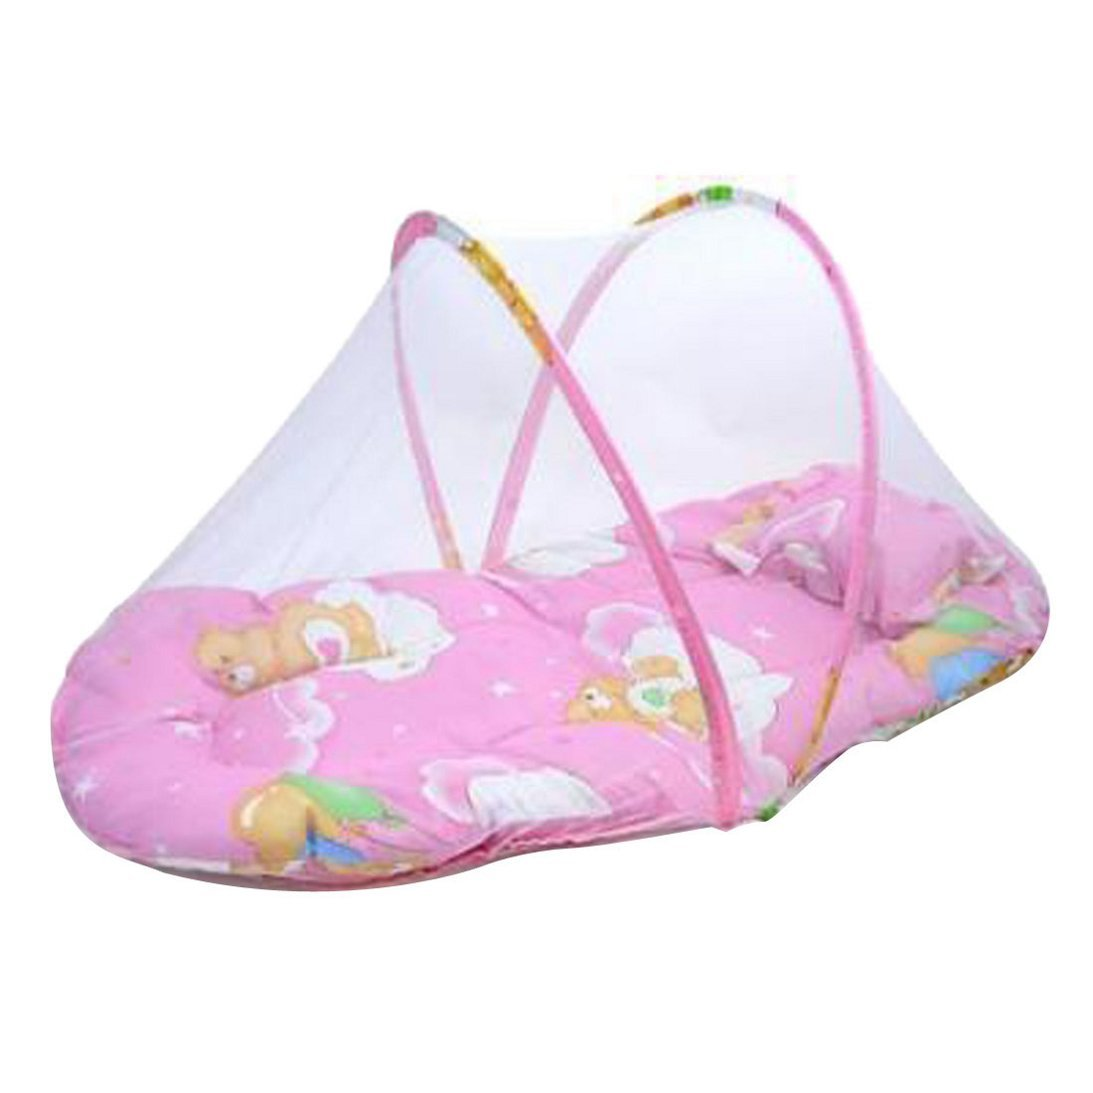 Sunward Hot! Baby Bed Mosquito Net with Cushion Portable Folding Crib Mattress (Pink) by Sunward (Image #1)